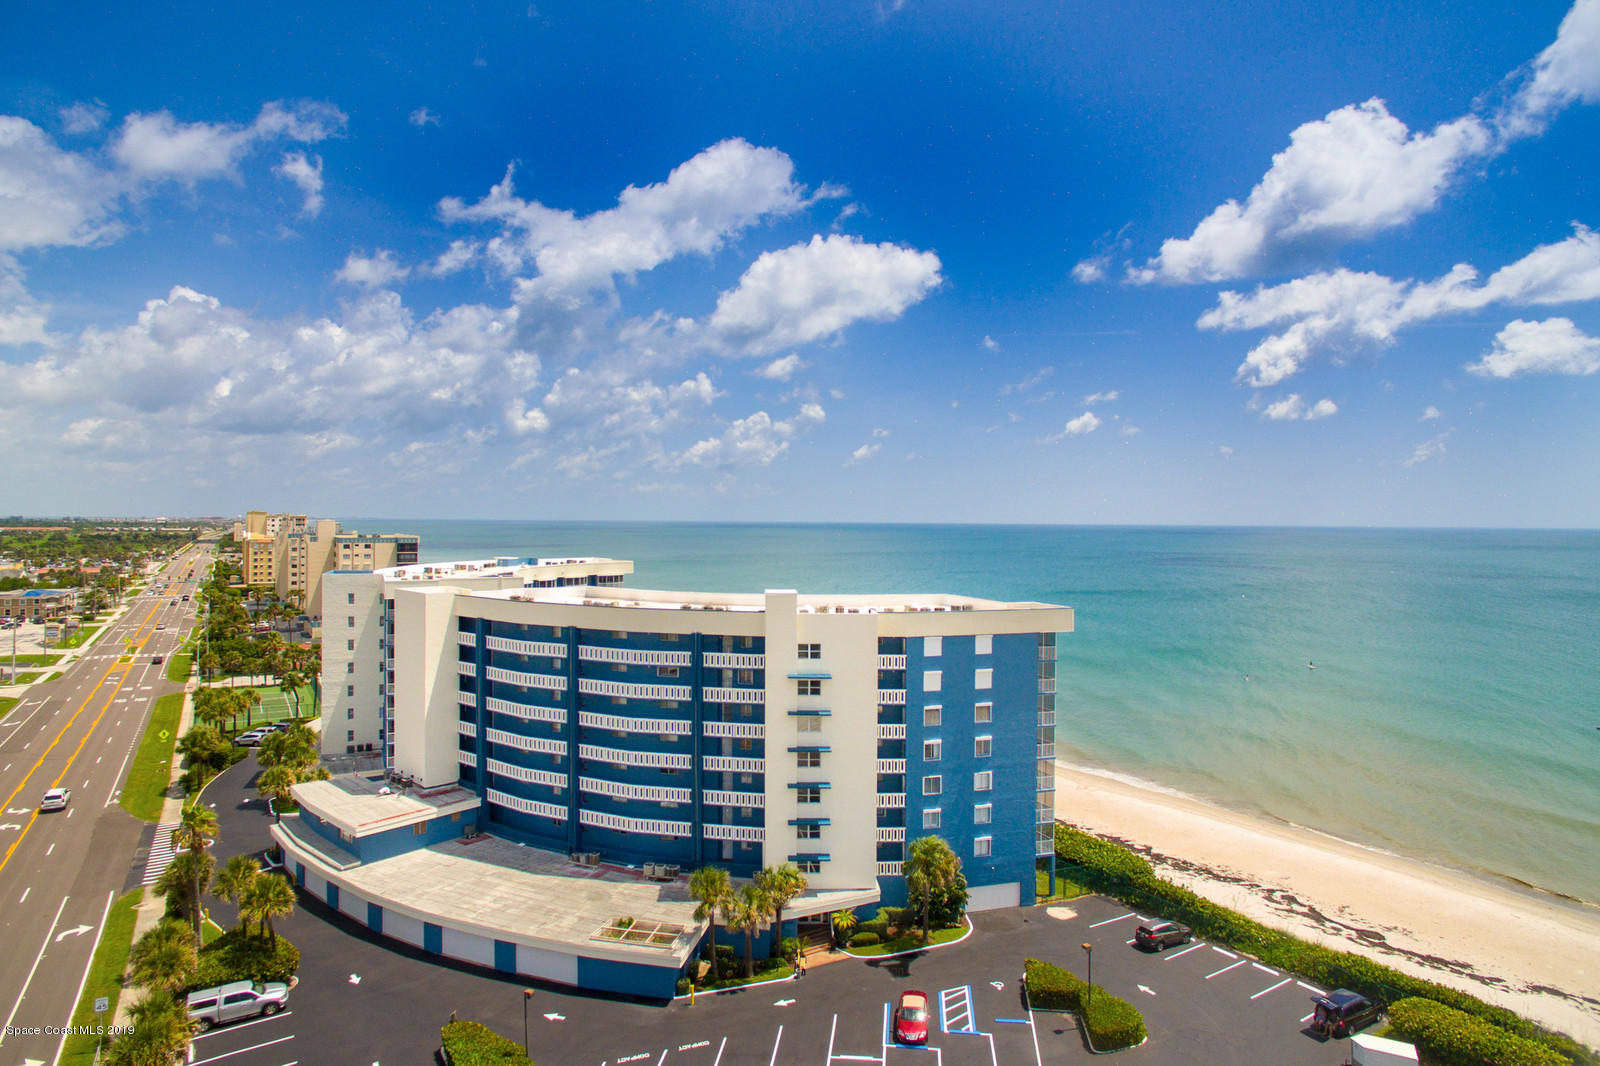 Single Family Homes for Sale at 1175 Highway A1a Satellite Beach, Florida 32937 United States